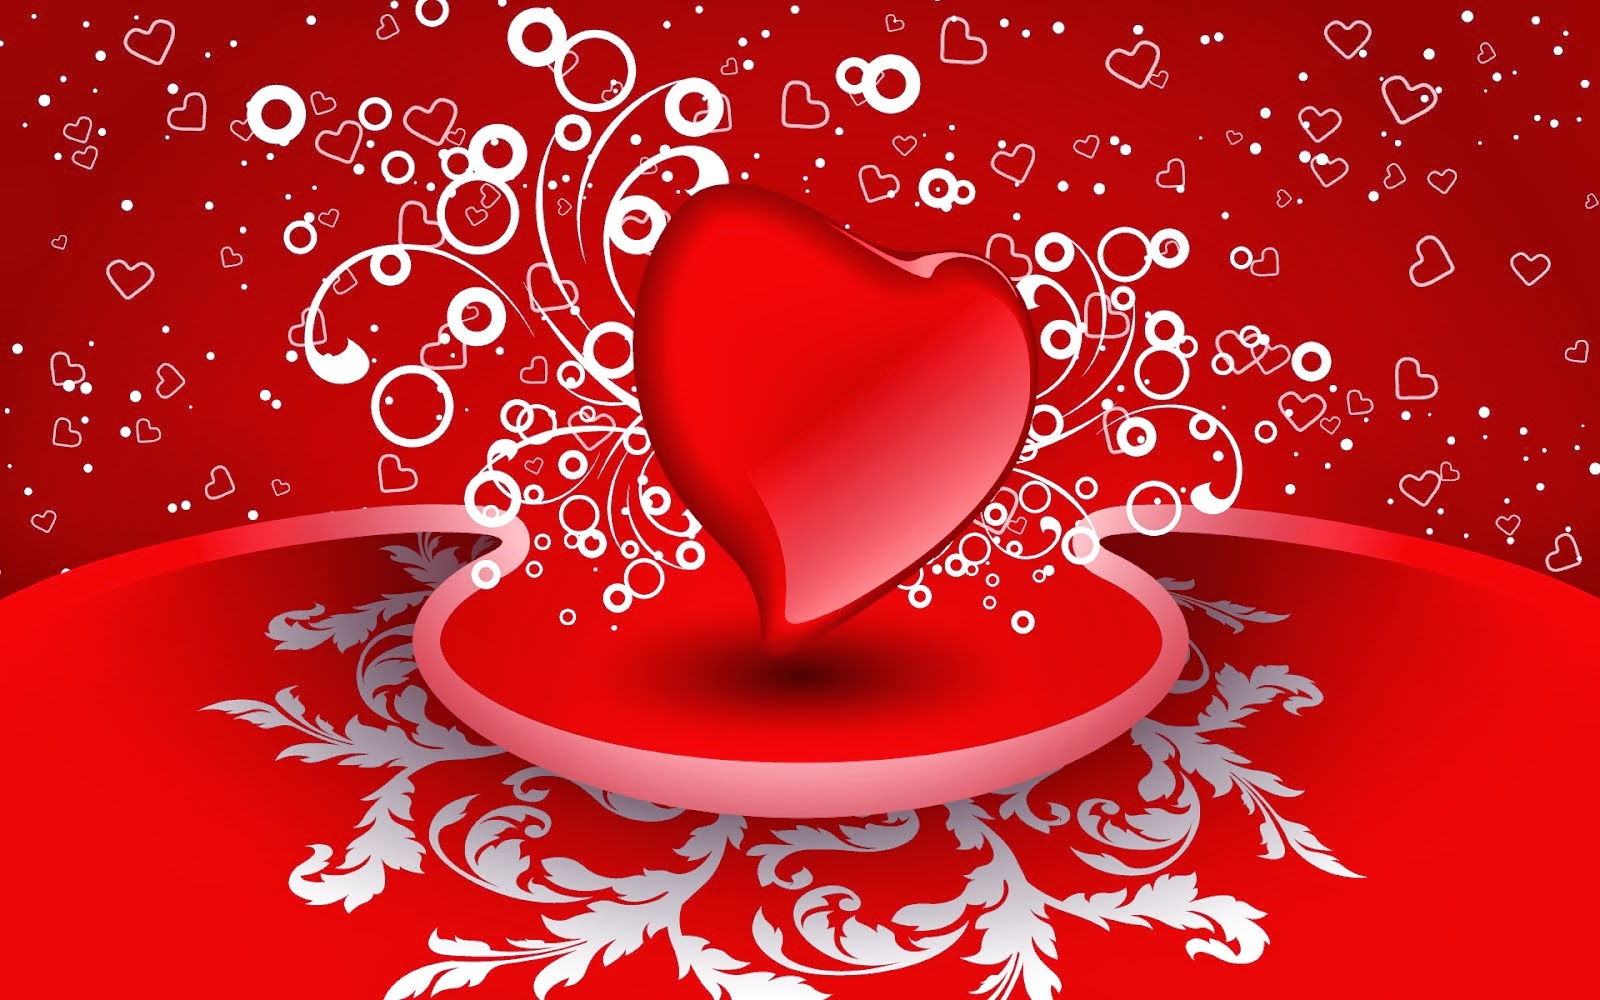 Valentines Day Heart Shaped Full Hd Wallpapers For 2014